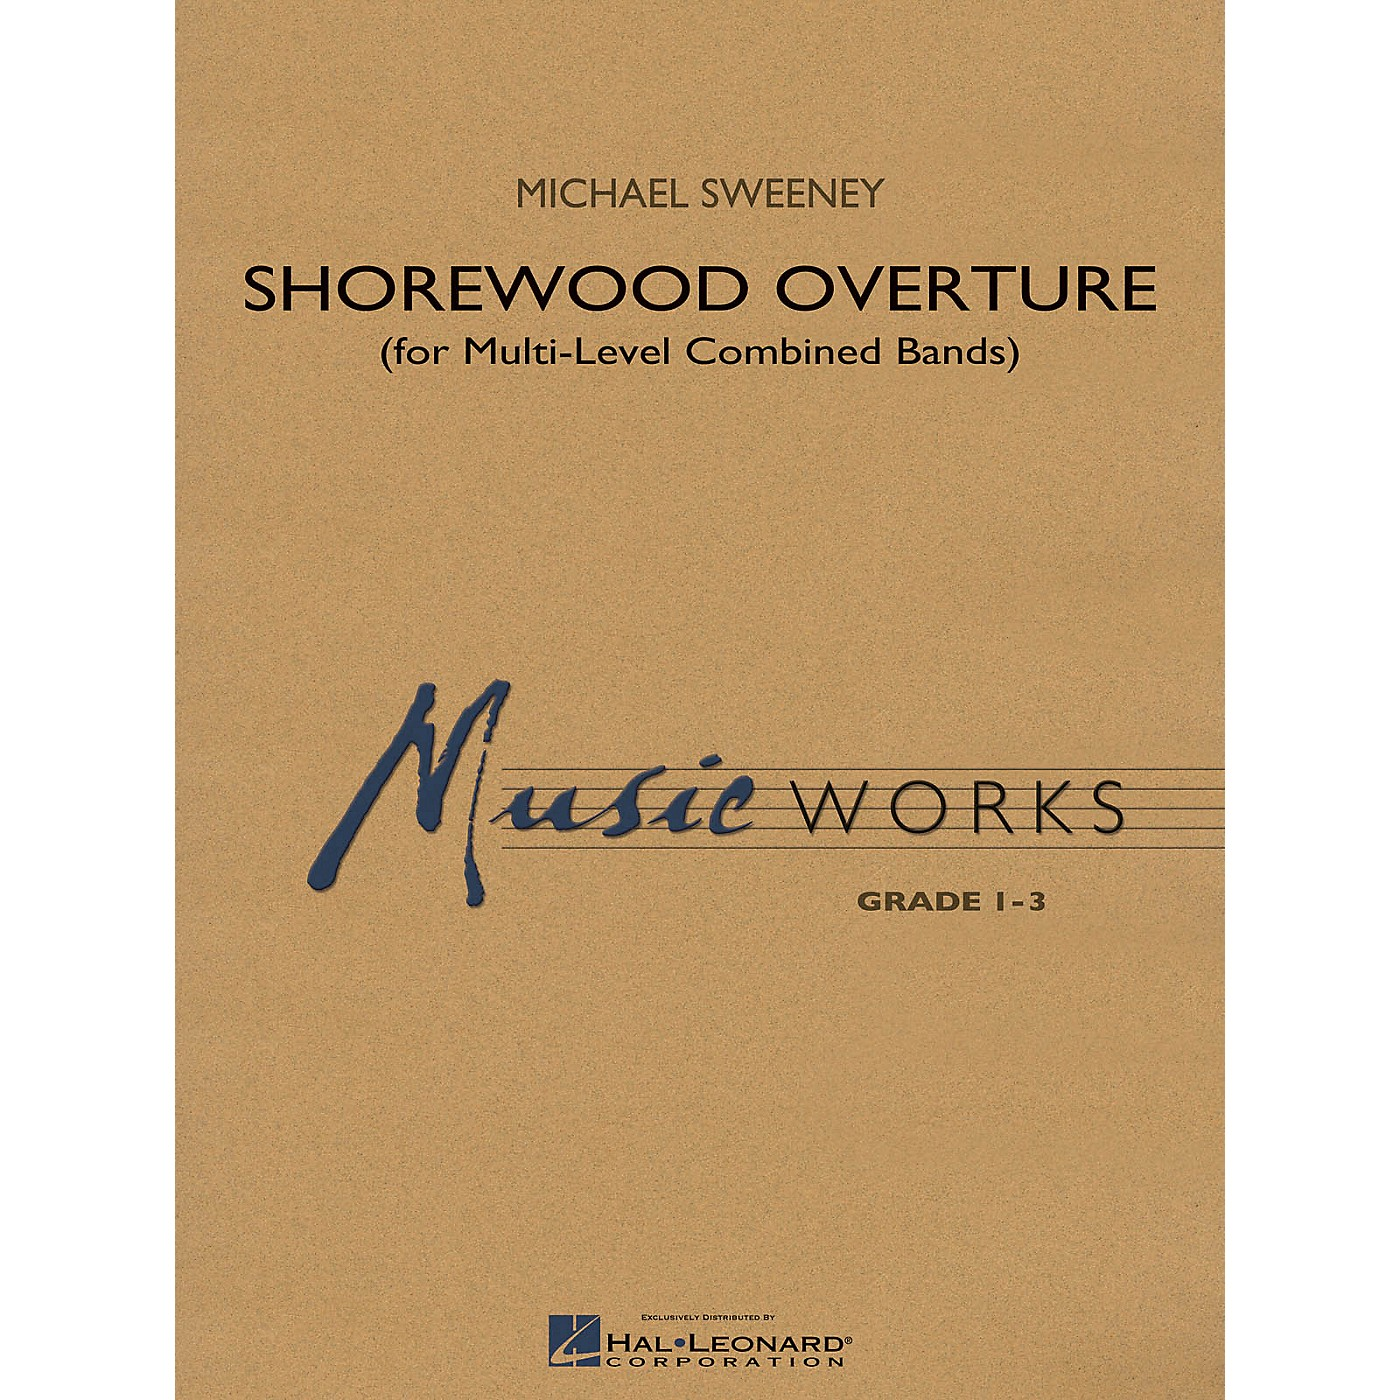 Hal Leonard Shorewood Overture (for Multi-level Combined Bands) Concert Band Level 3 Composed by Michael Sweeney thumbnail